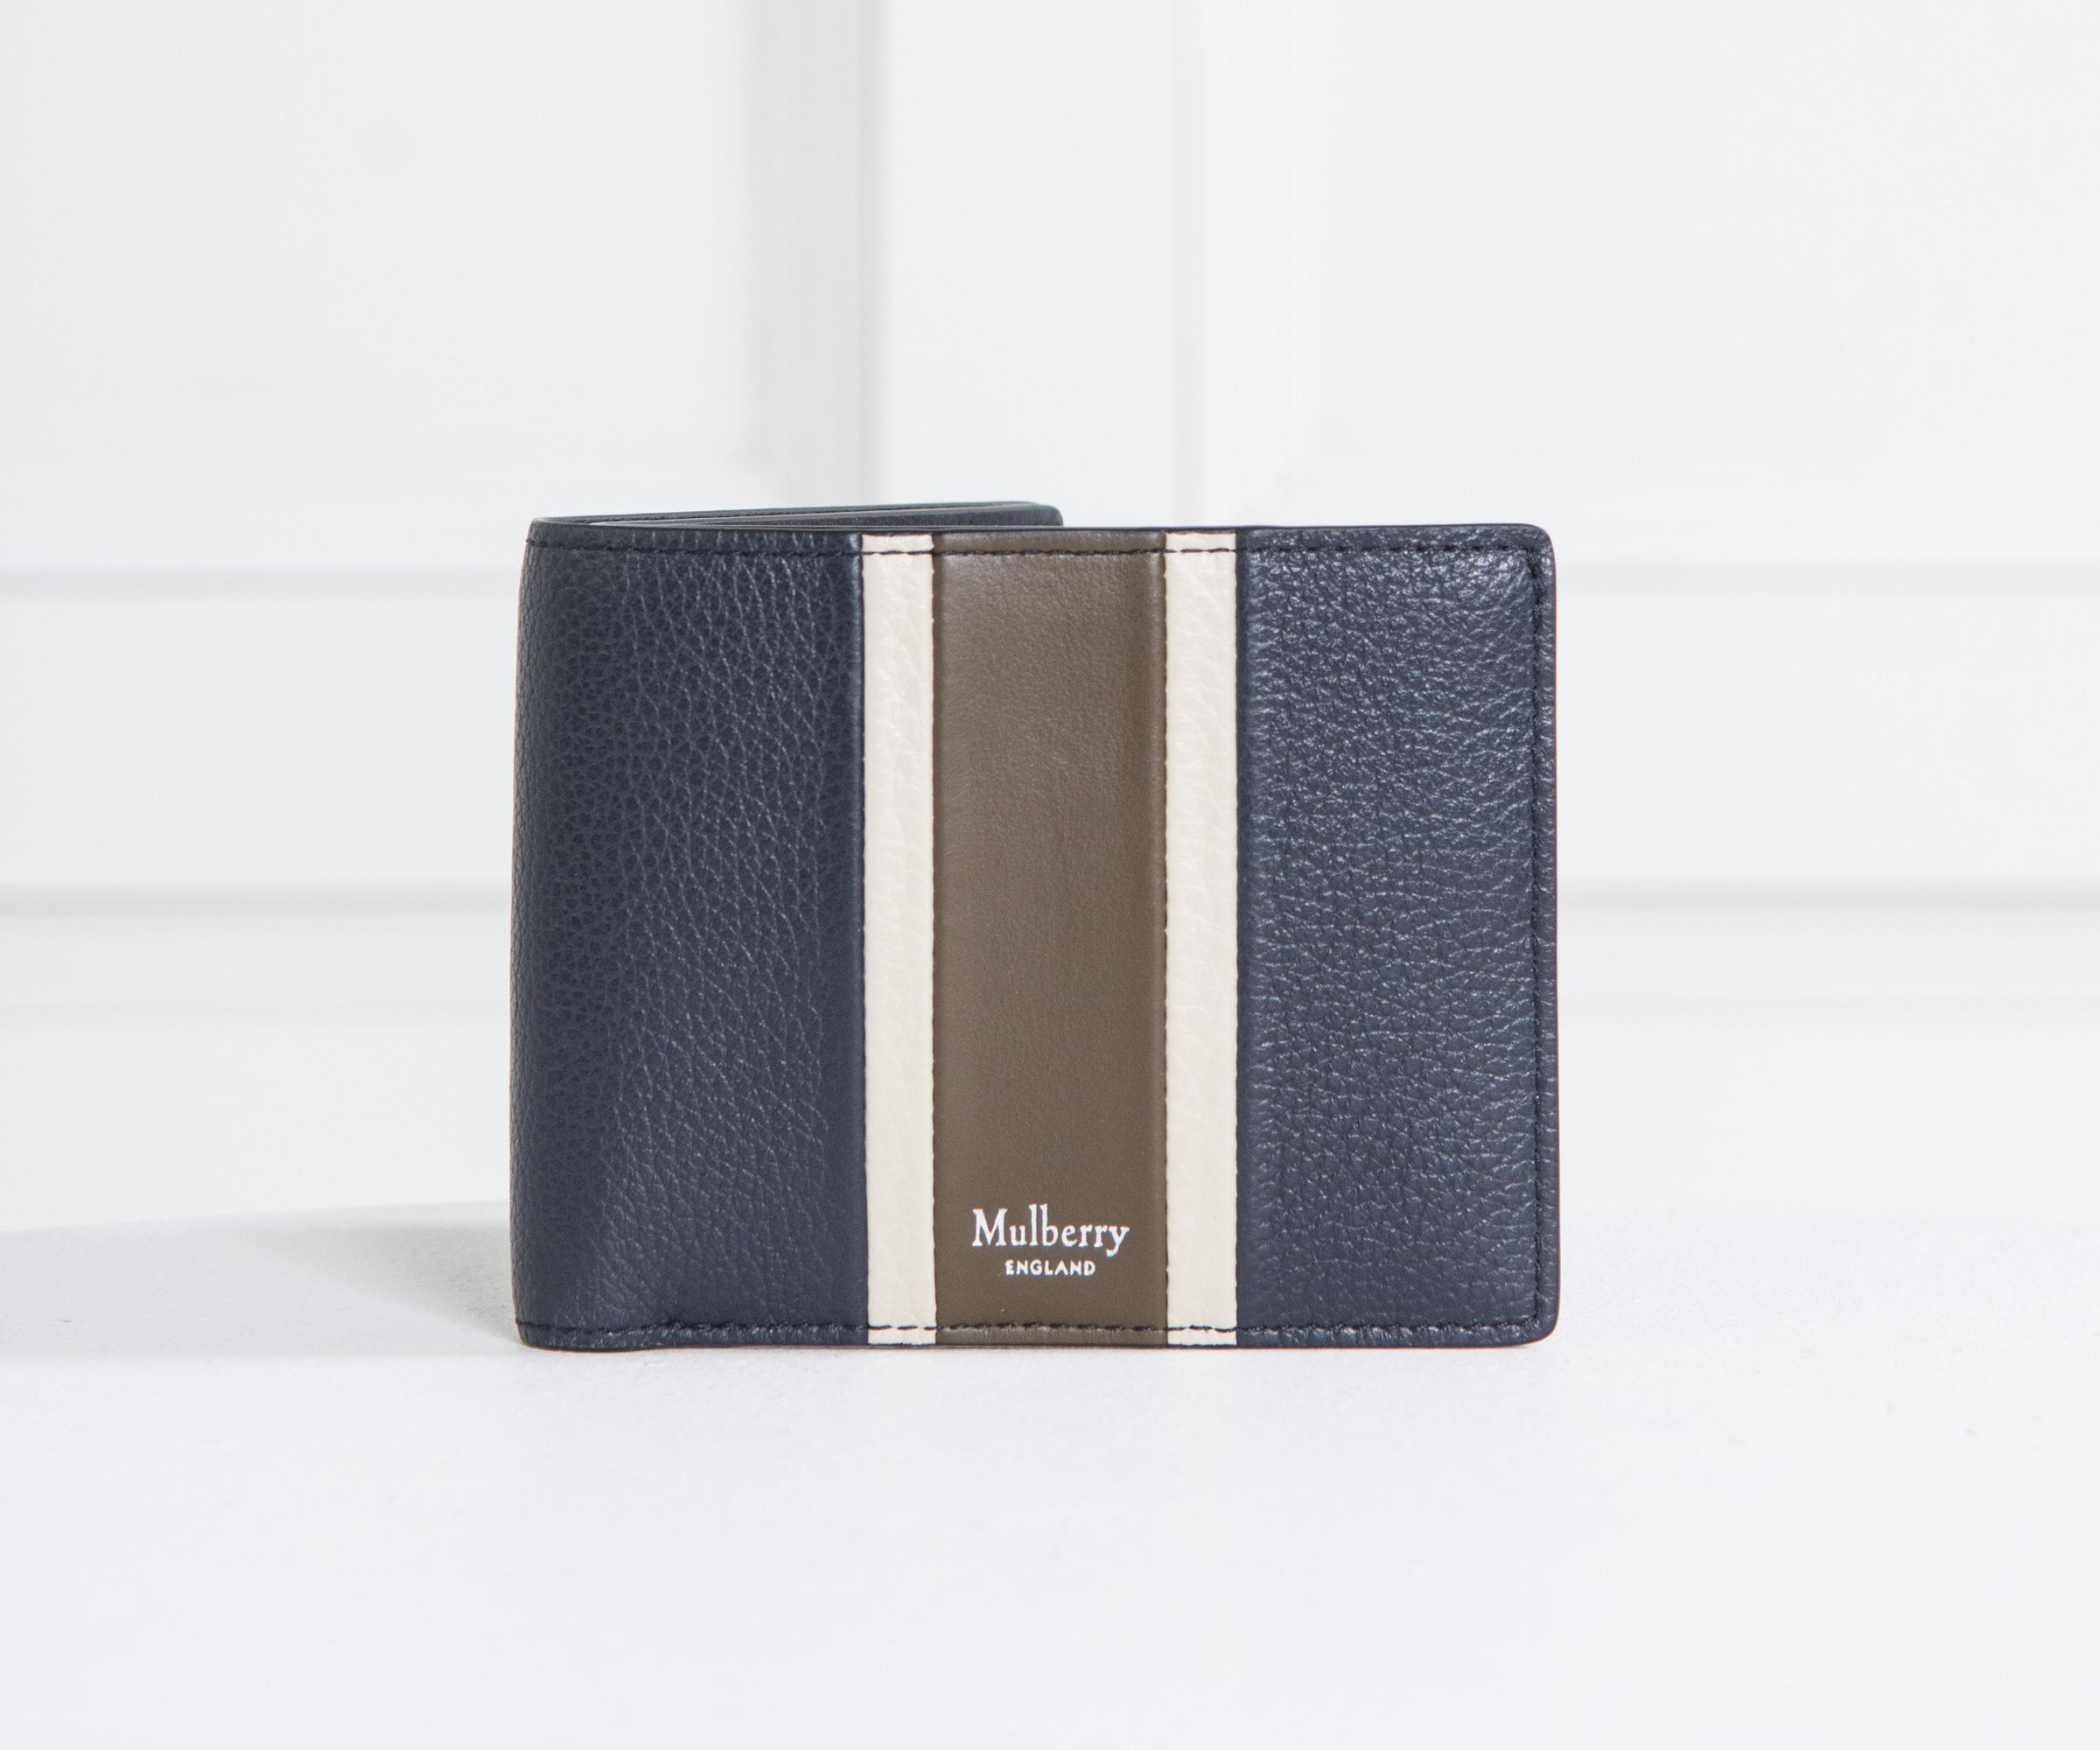 588de6f0ec0 ... embossed croc print leather sold spain lyst mulberry college stripe 8  card wallet midnight moss in blue 785f6 6a85e ...